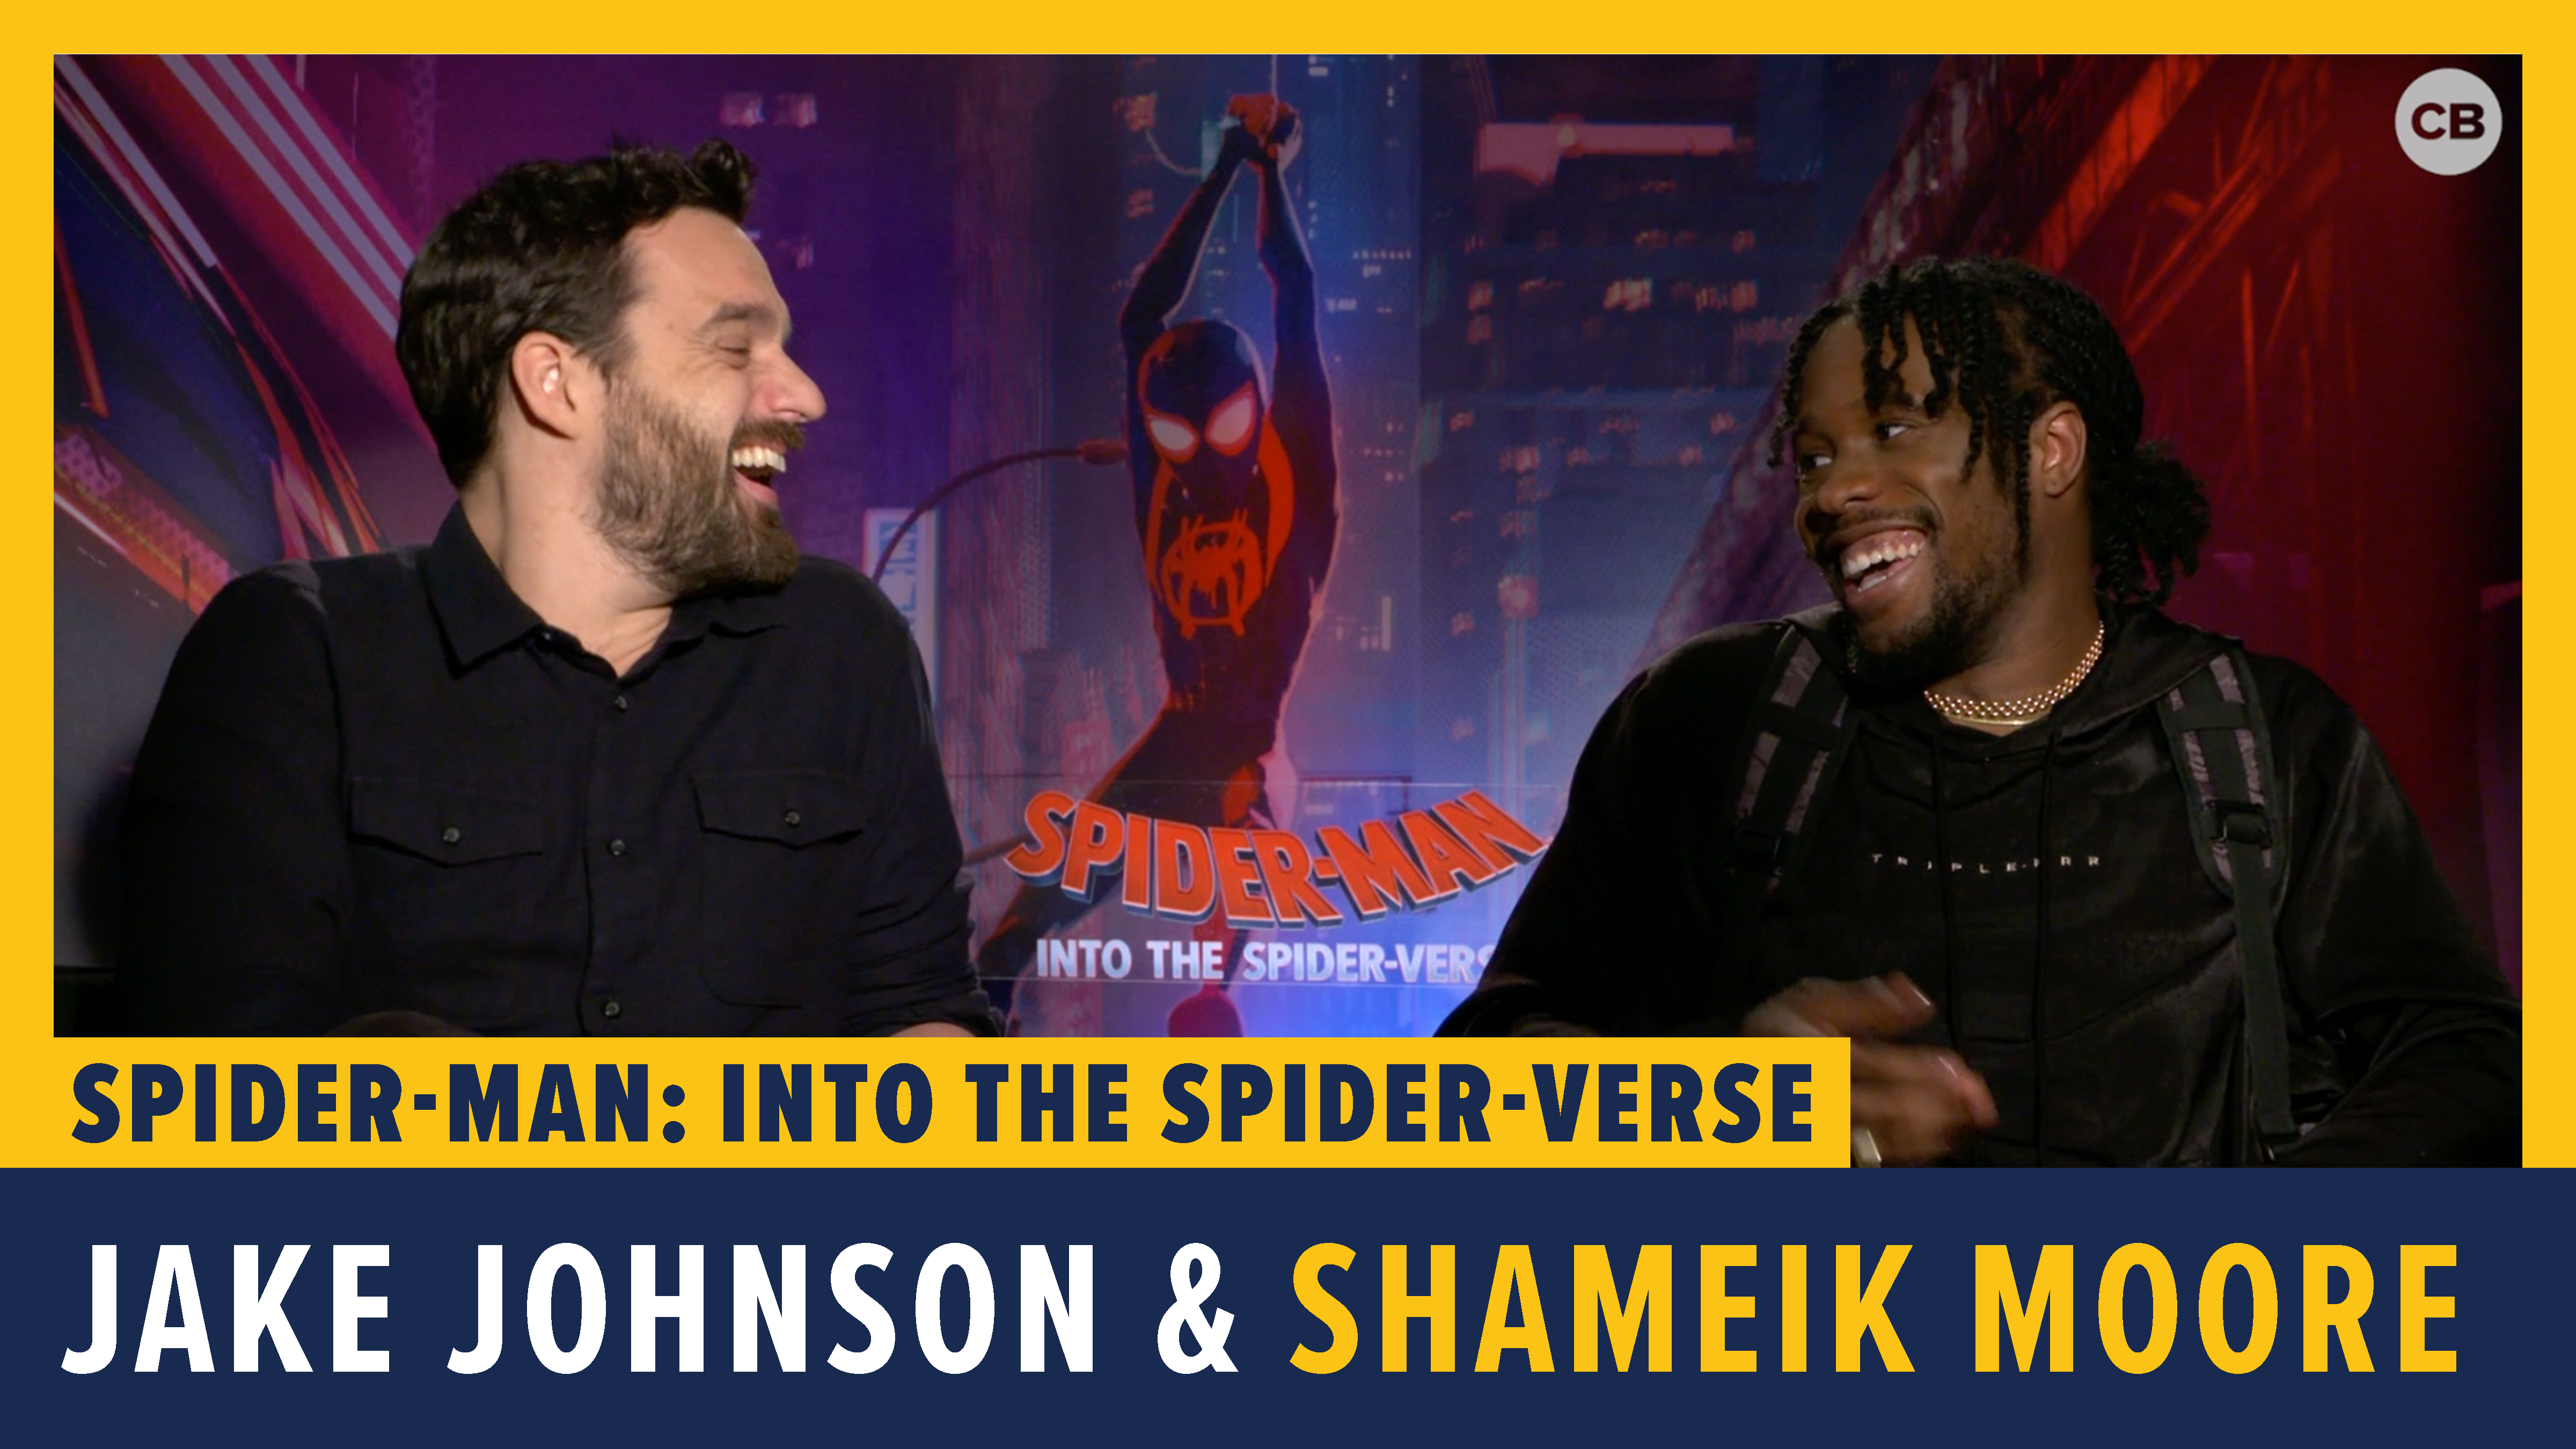 Jake Johnson and Shameik Moore Talk 'Spider-Man: Into the Spider-Verse' screen capture